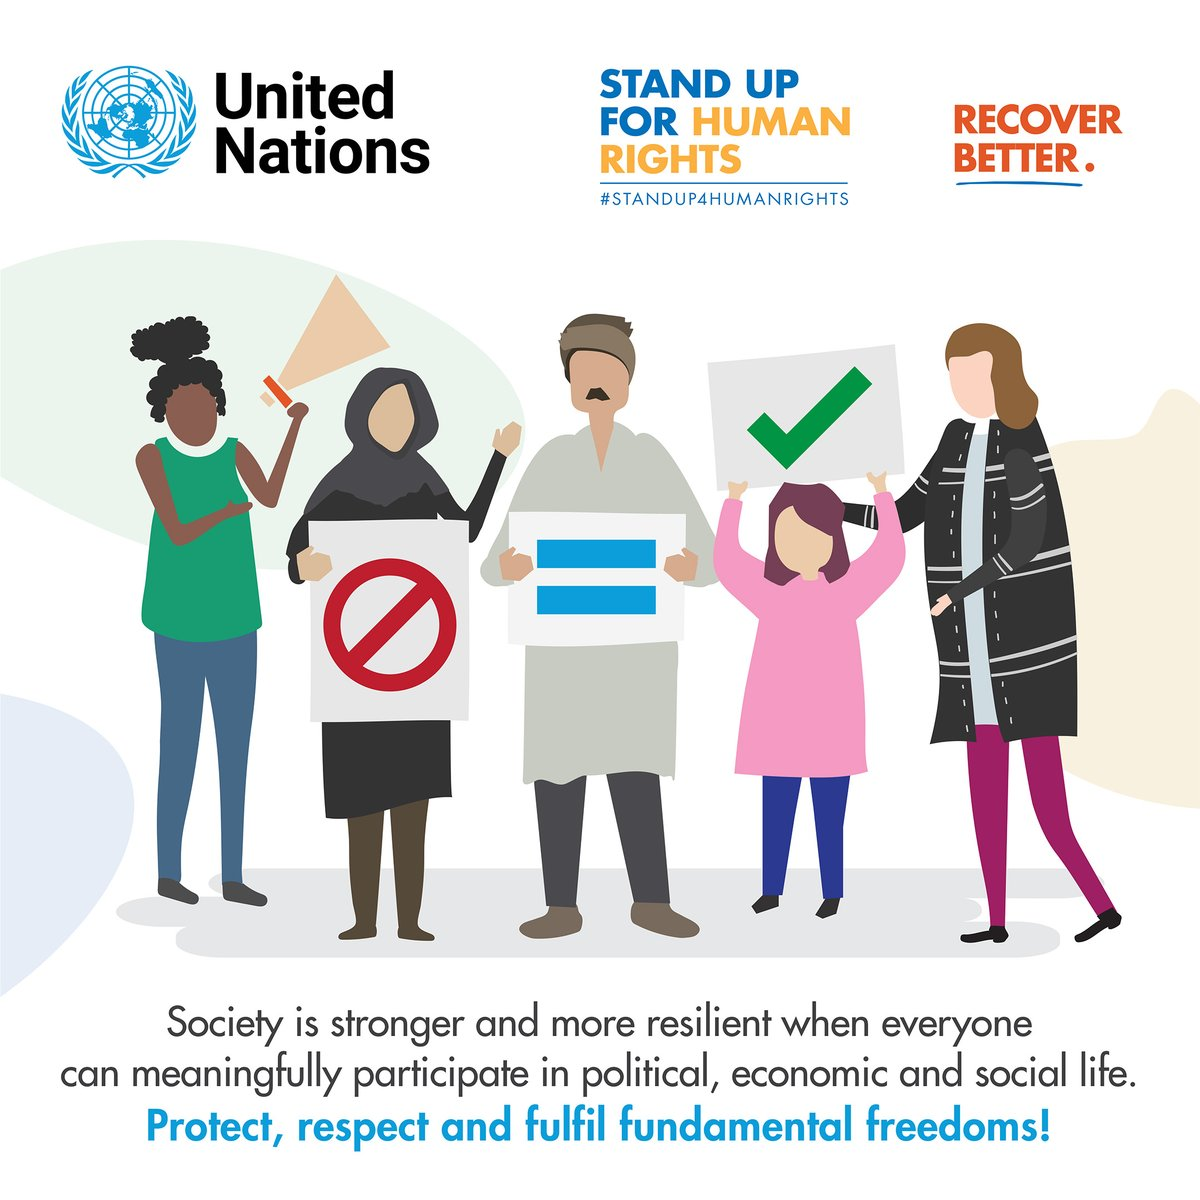 Amid #COVID19, we've seen a sharp rise in stigma and discrimination against a range of populations.  This must stop!  Let's vow to strengthen equality, empathy and #HumanRights, as we seek to #RecoverBetter.  #StandUp4HumanRights #HumanRightsDay